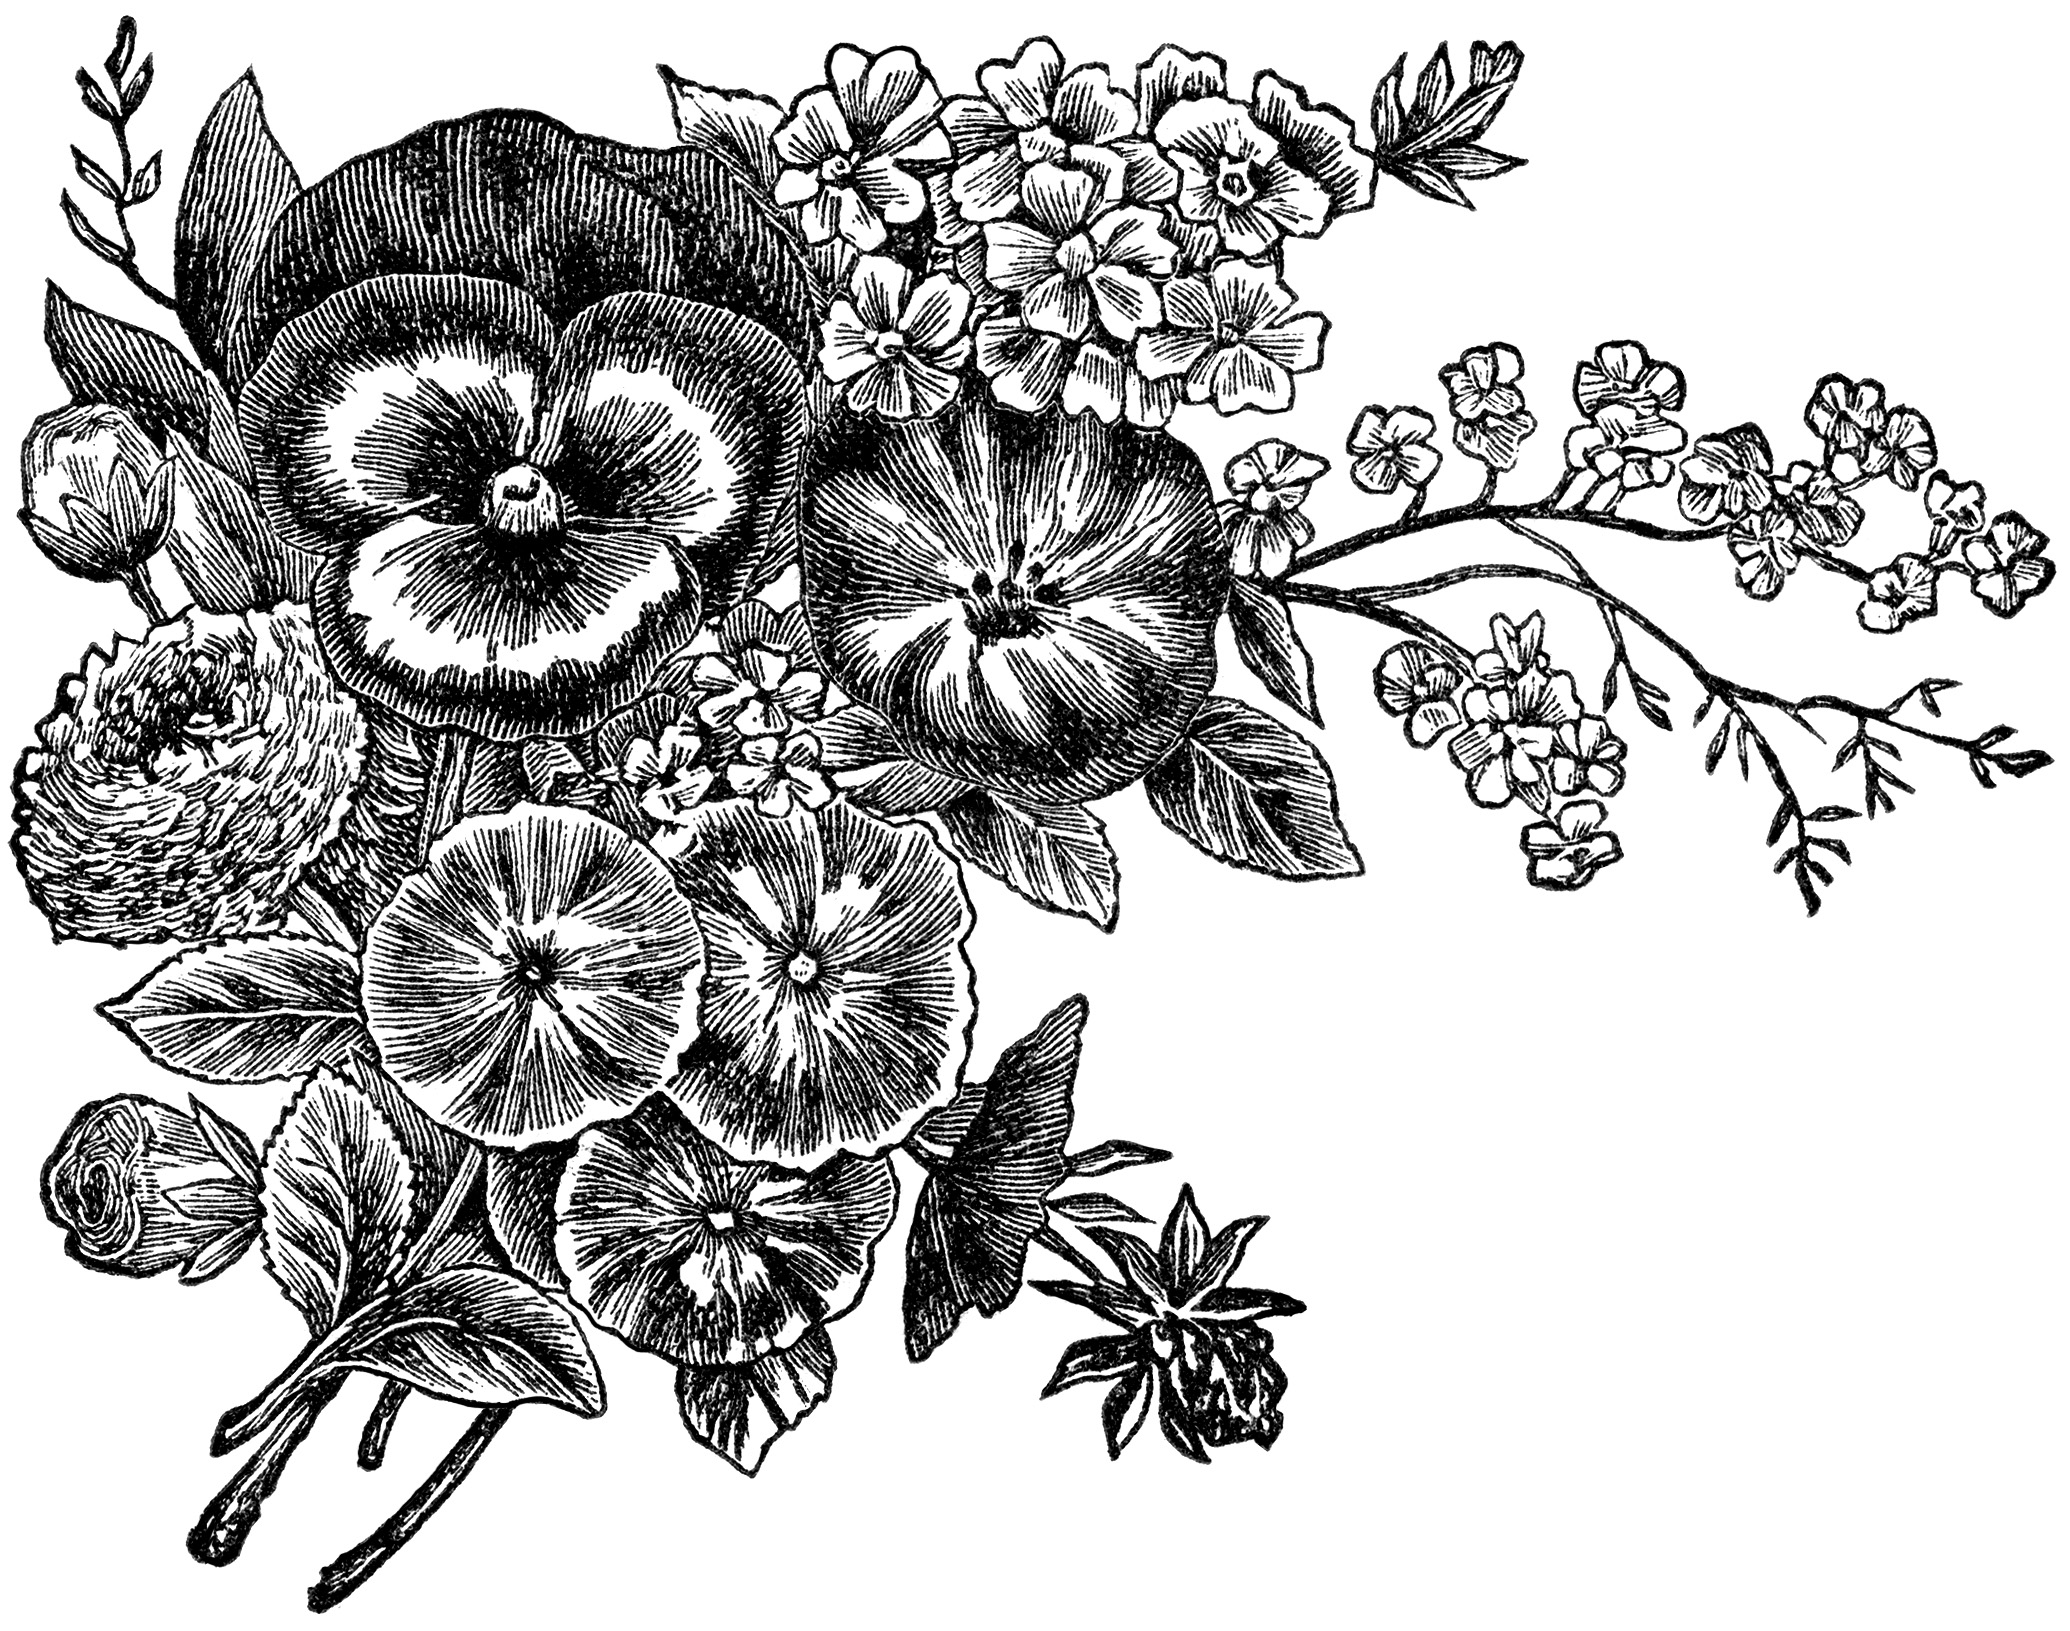 Vintage Black and White Flower Clip Art